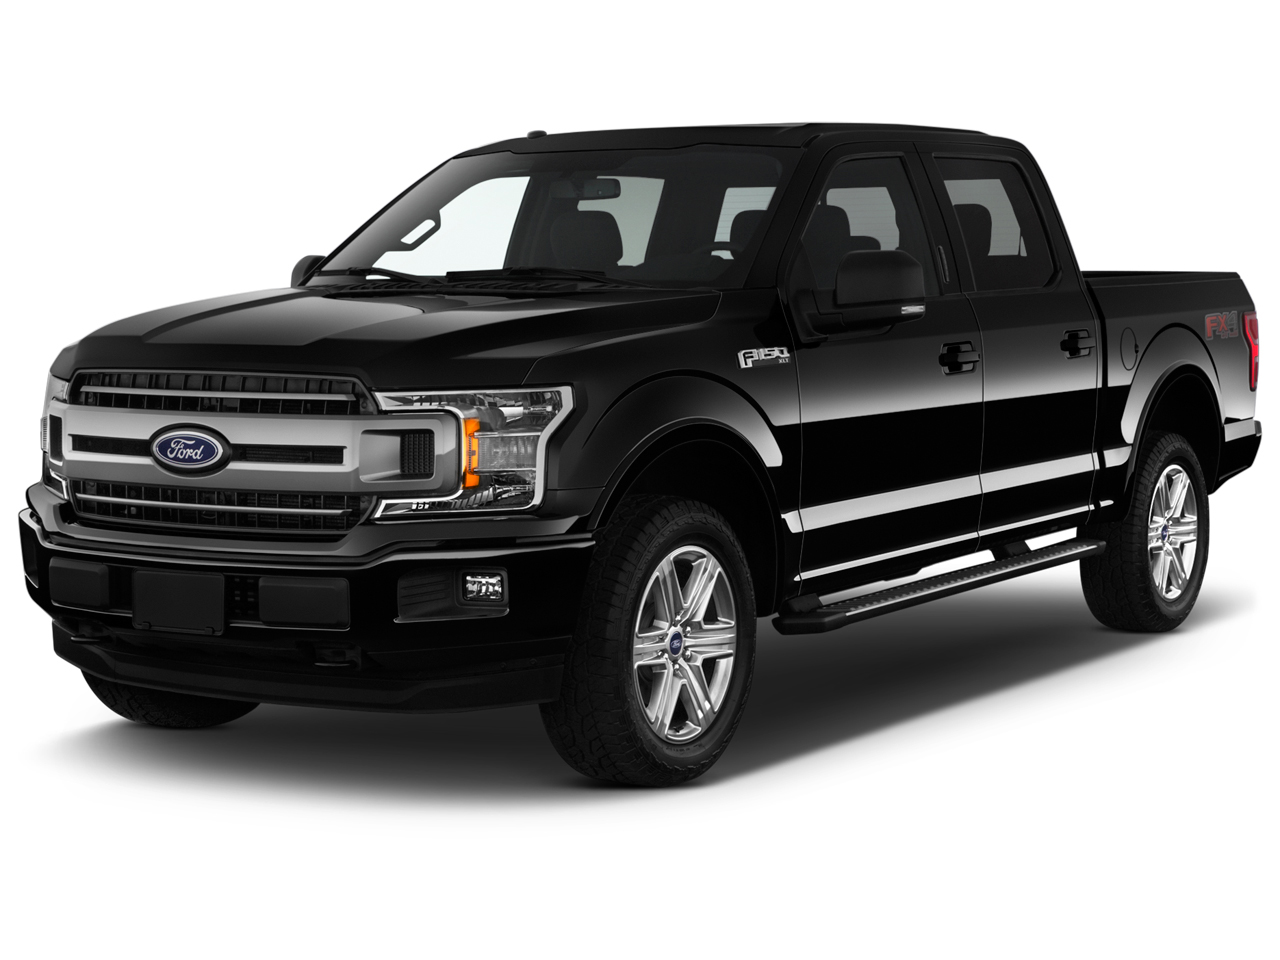 Ford F150 Accessories Shipped from Canada | AutoEQ.ca